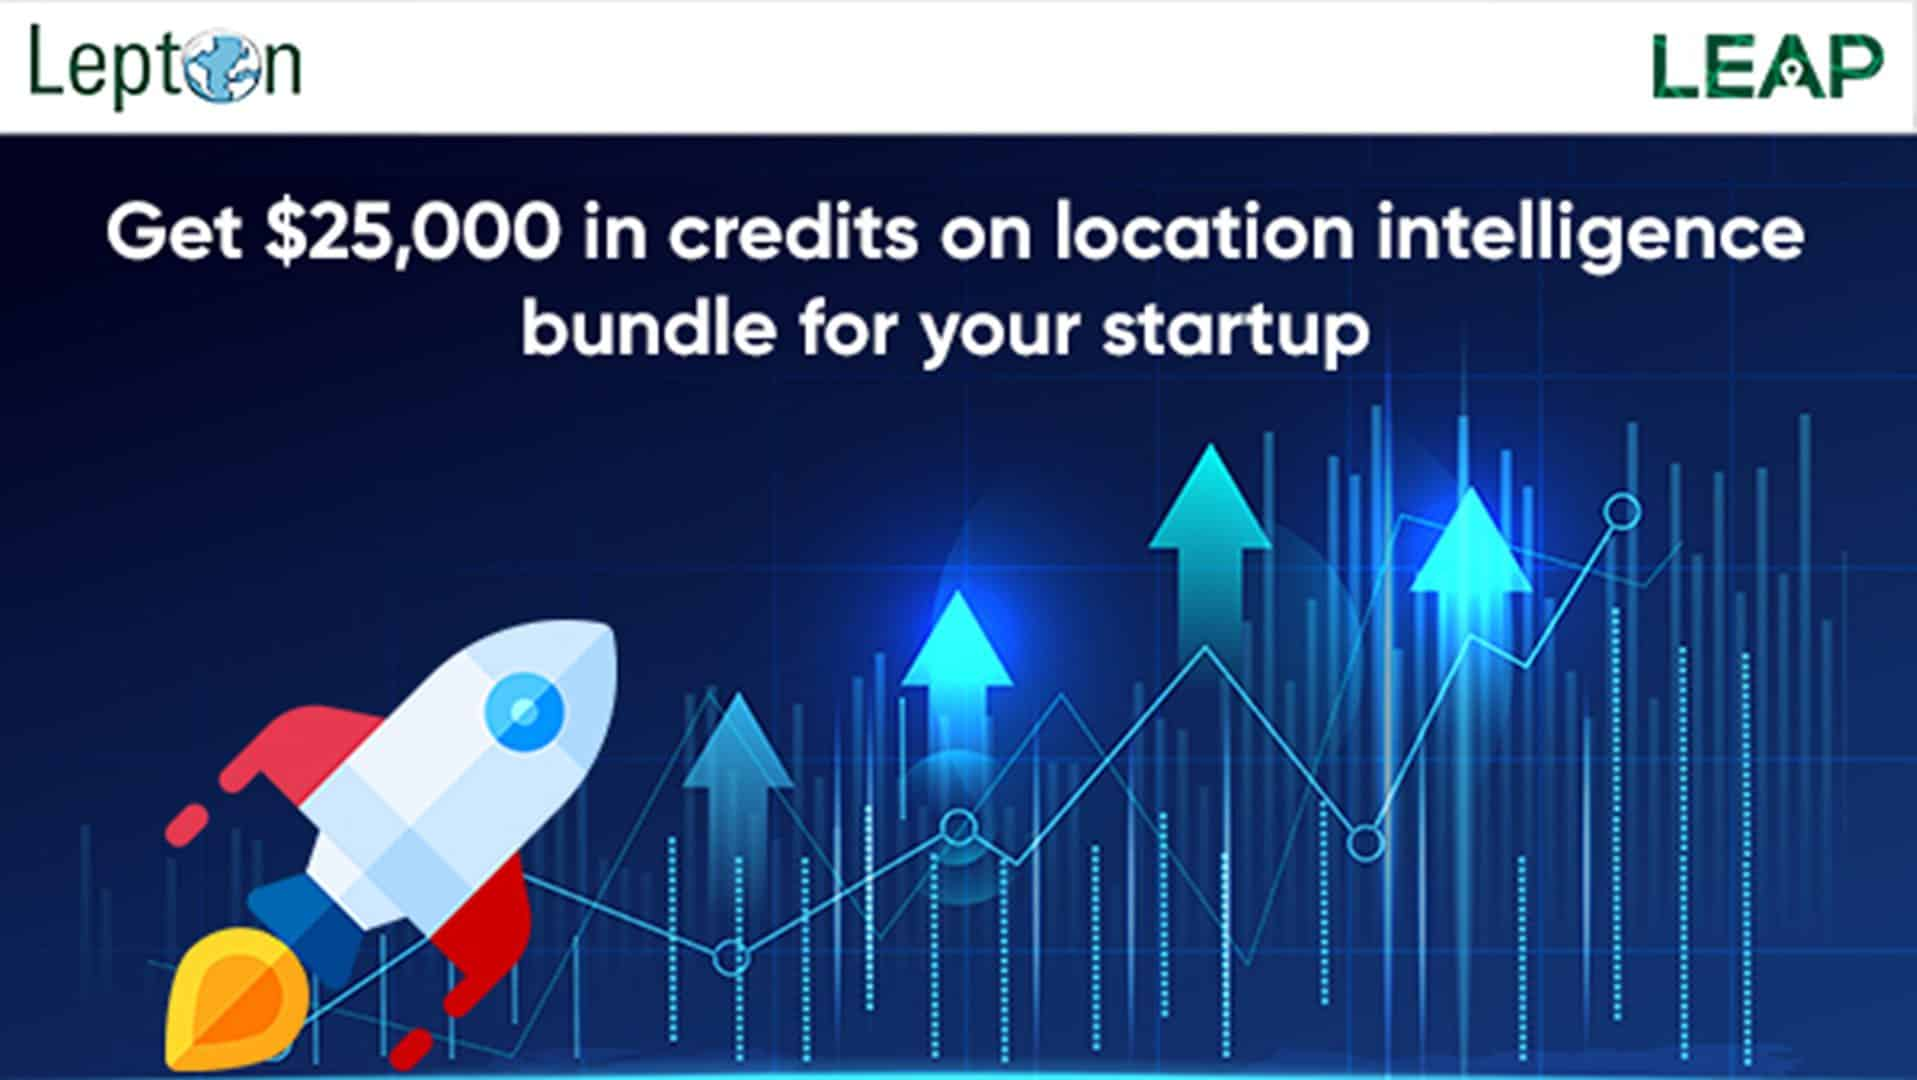 Looking at the current situation, Lepton Software, a leading location intelligence company with 25+ years in the business, has launched a growth program called LEAP for startups